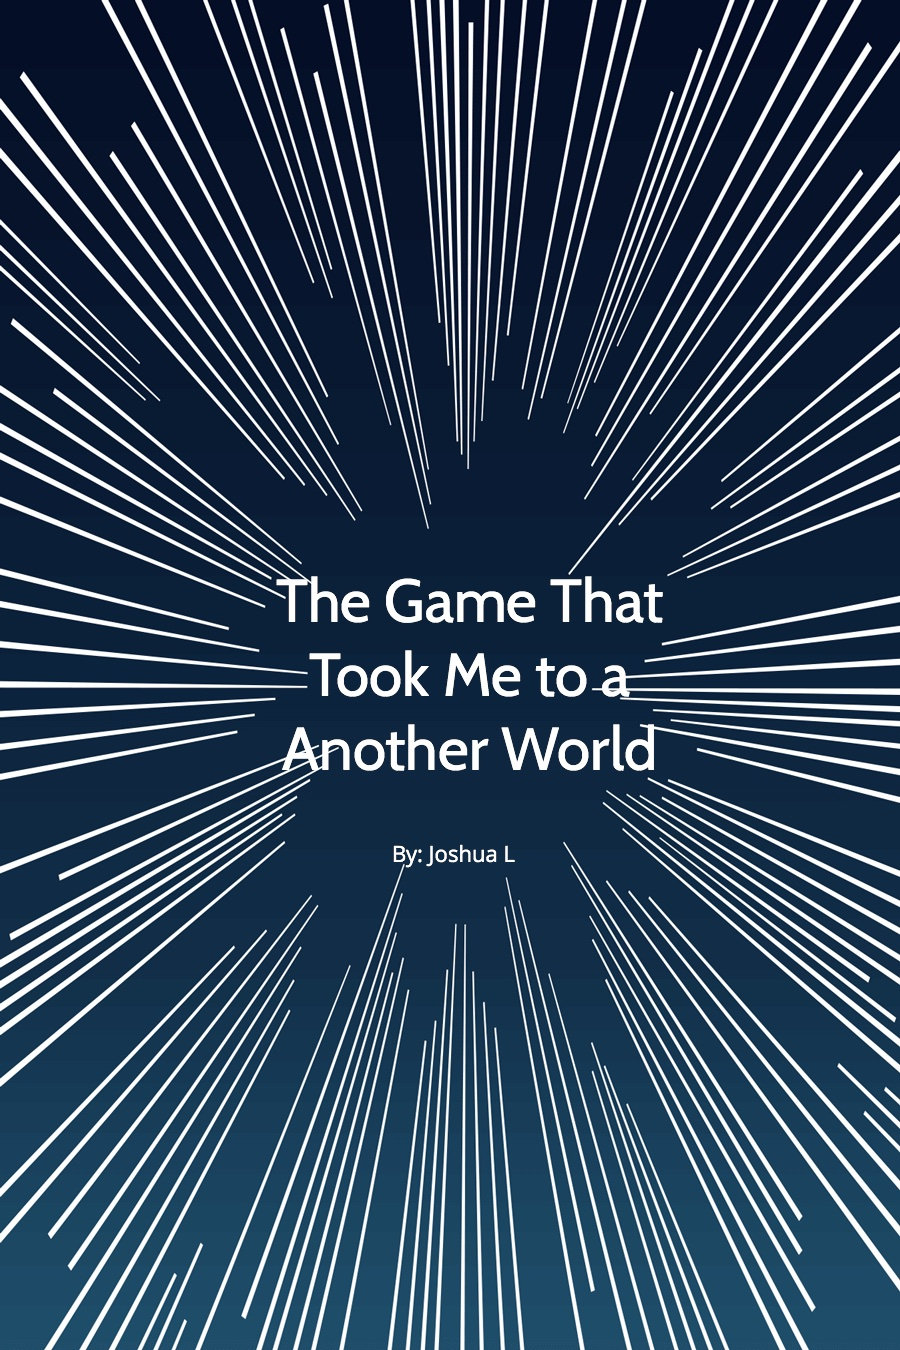 The Game That Took Me to a Another World